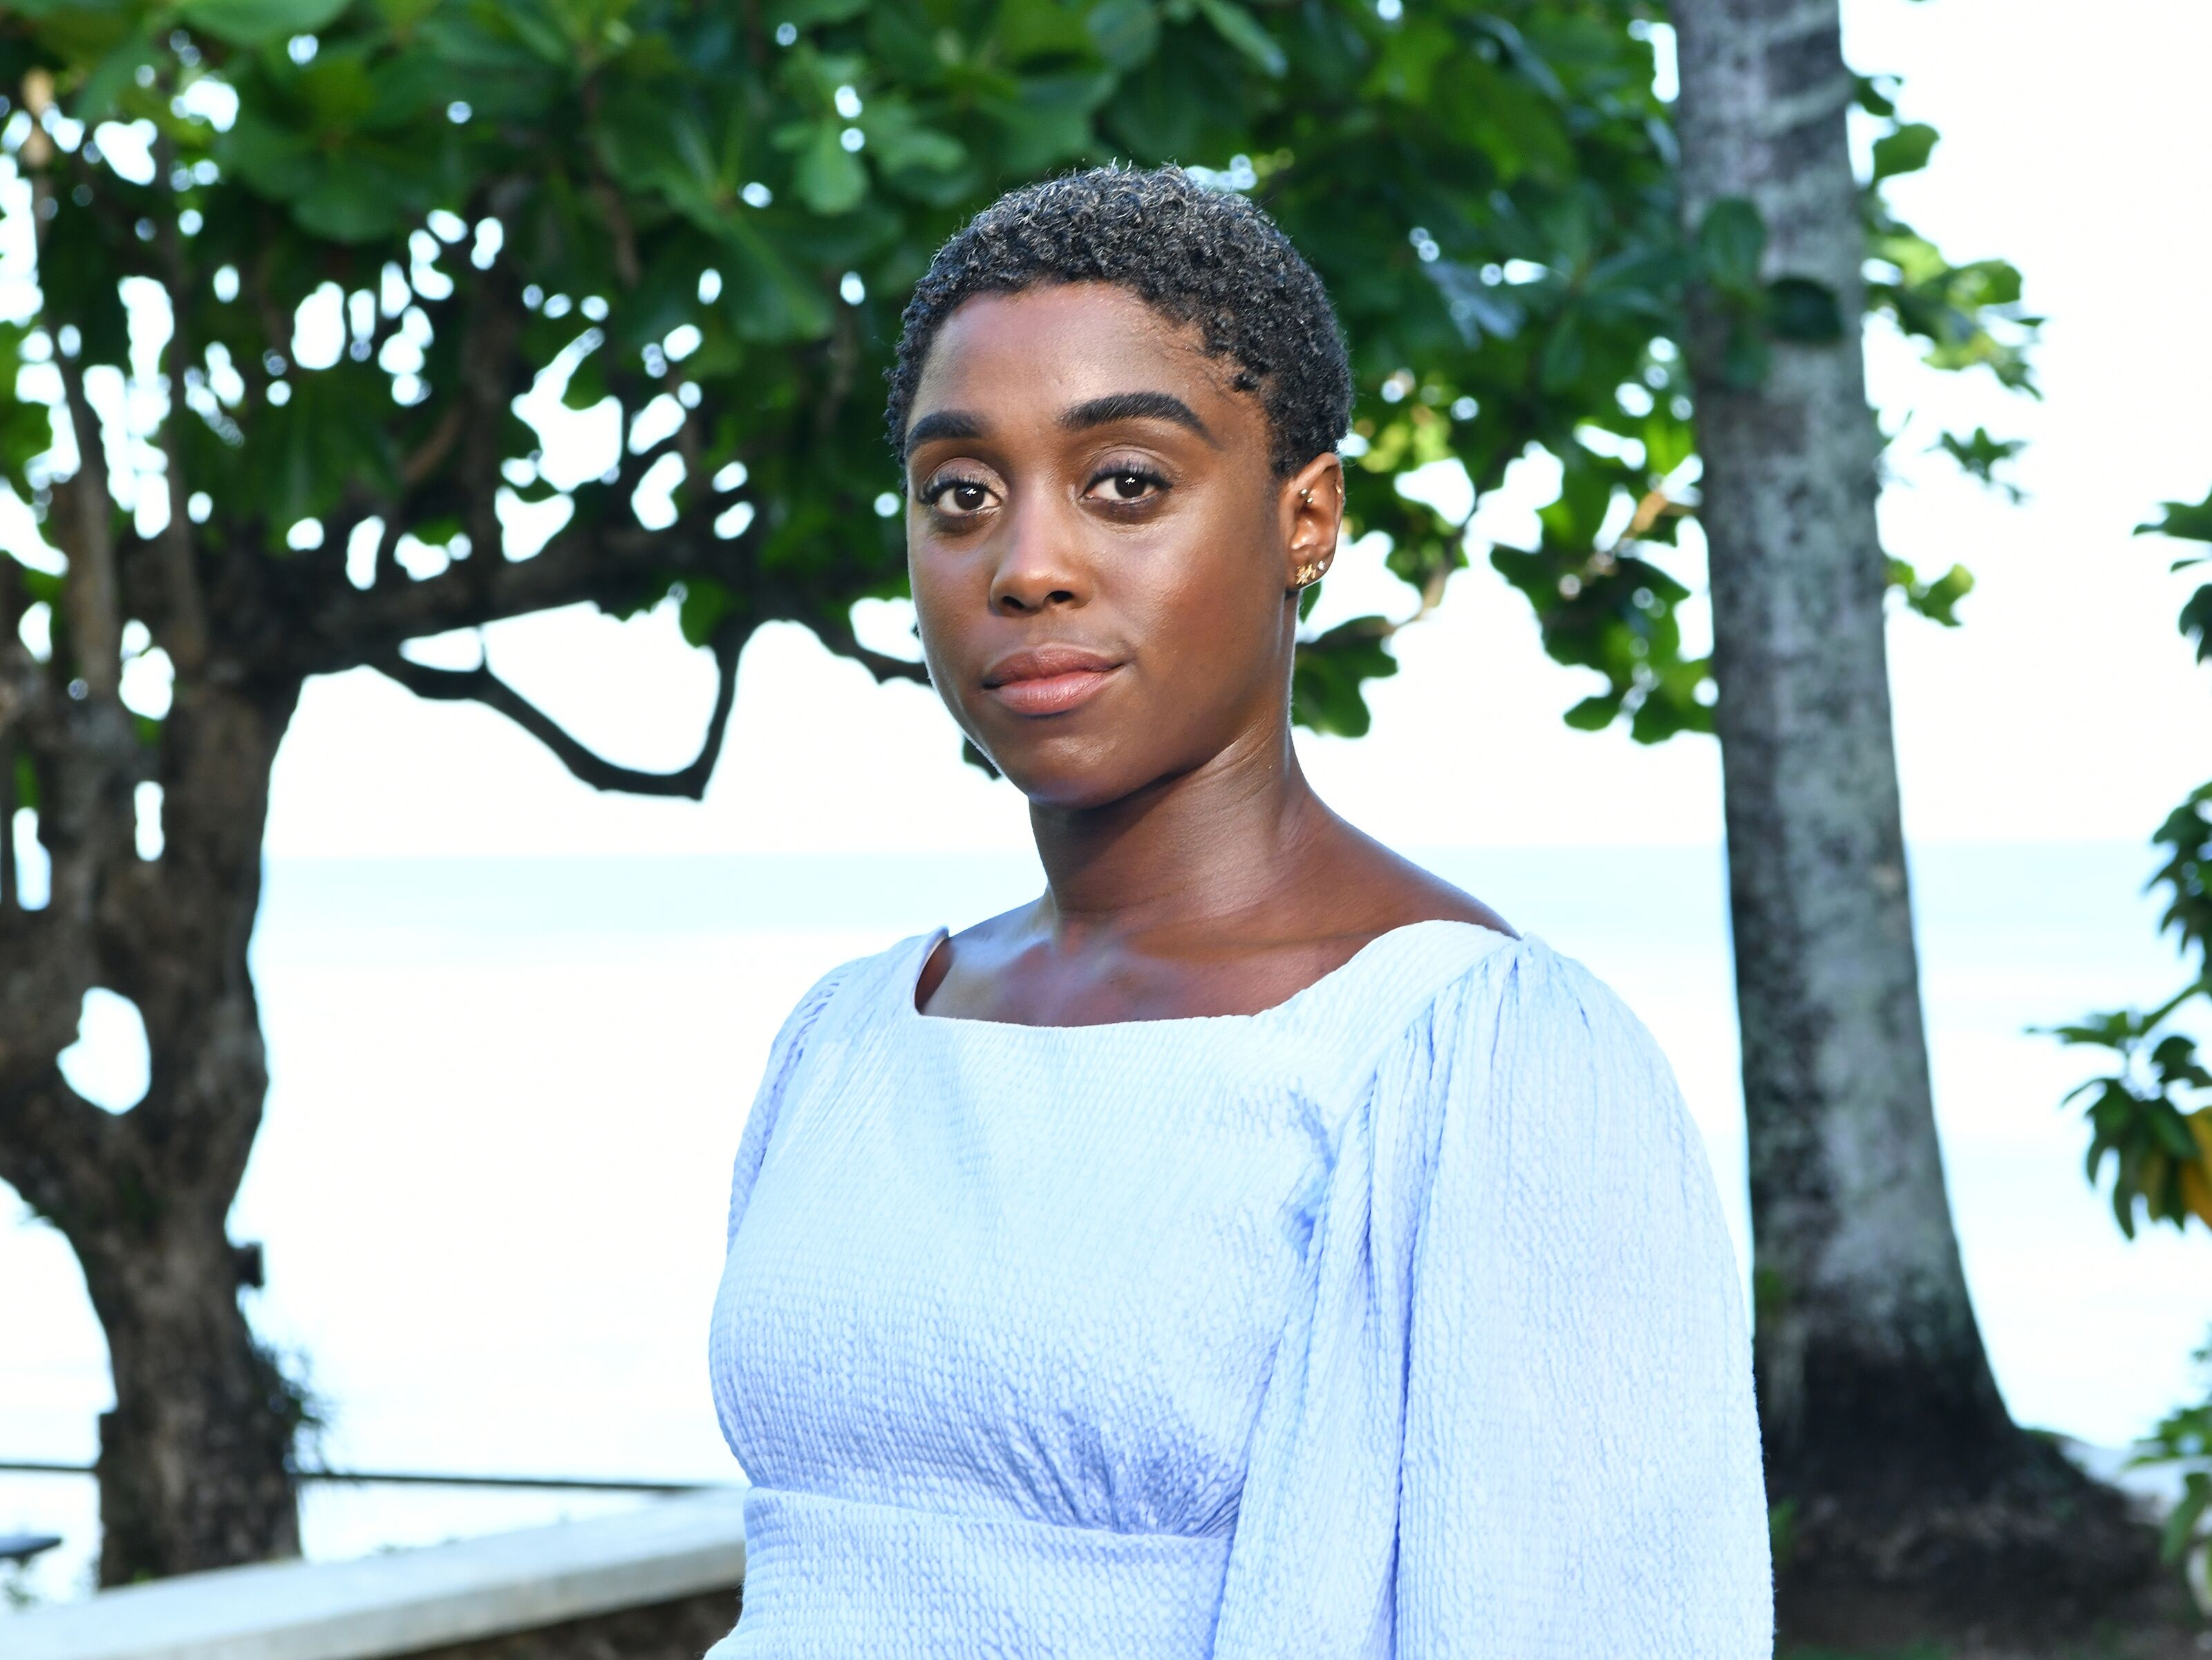 Yes, a black woman, Lashana Lynch, is your new 007, so deal with it